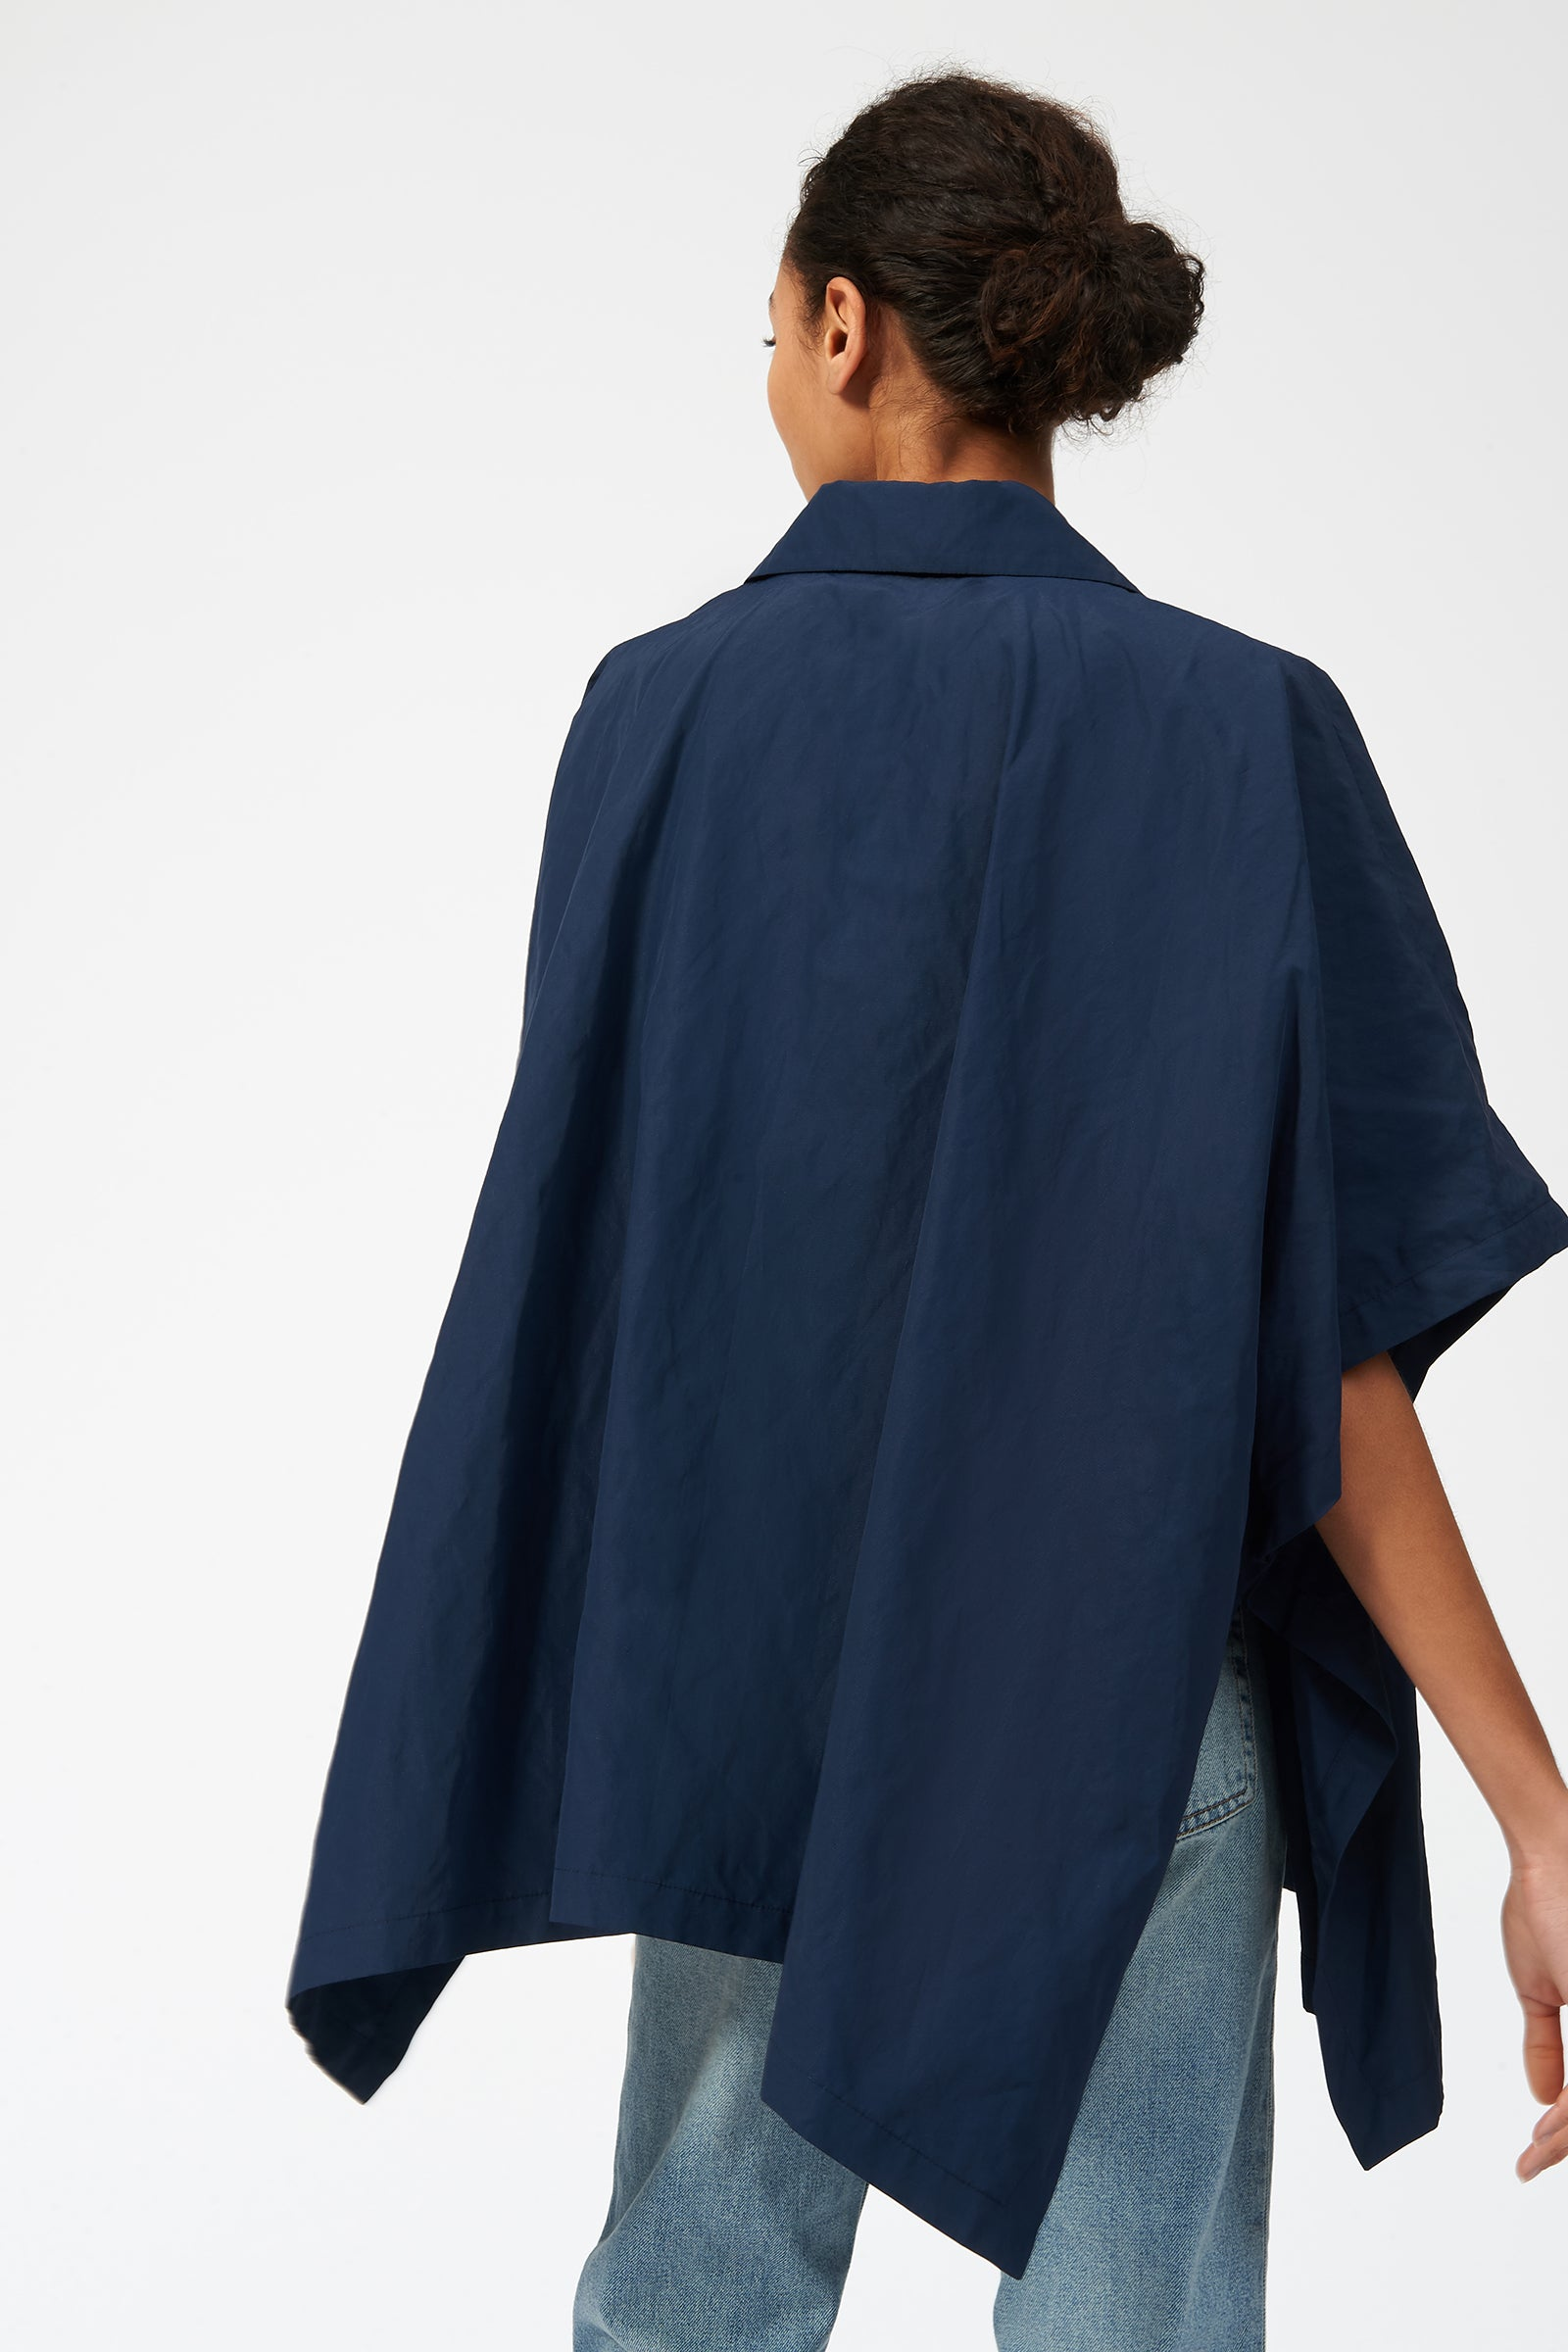 Kal Rieman Cotton Nylon Anorak in Navy on Model Back View